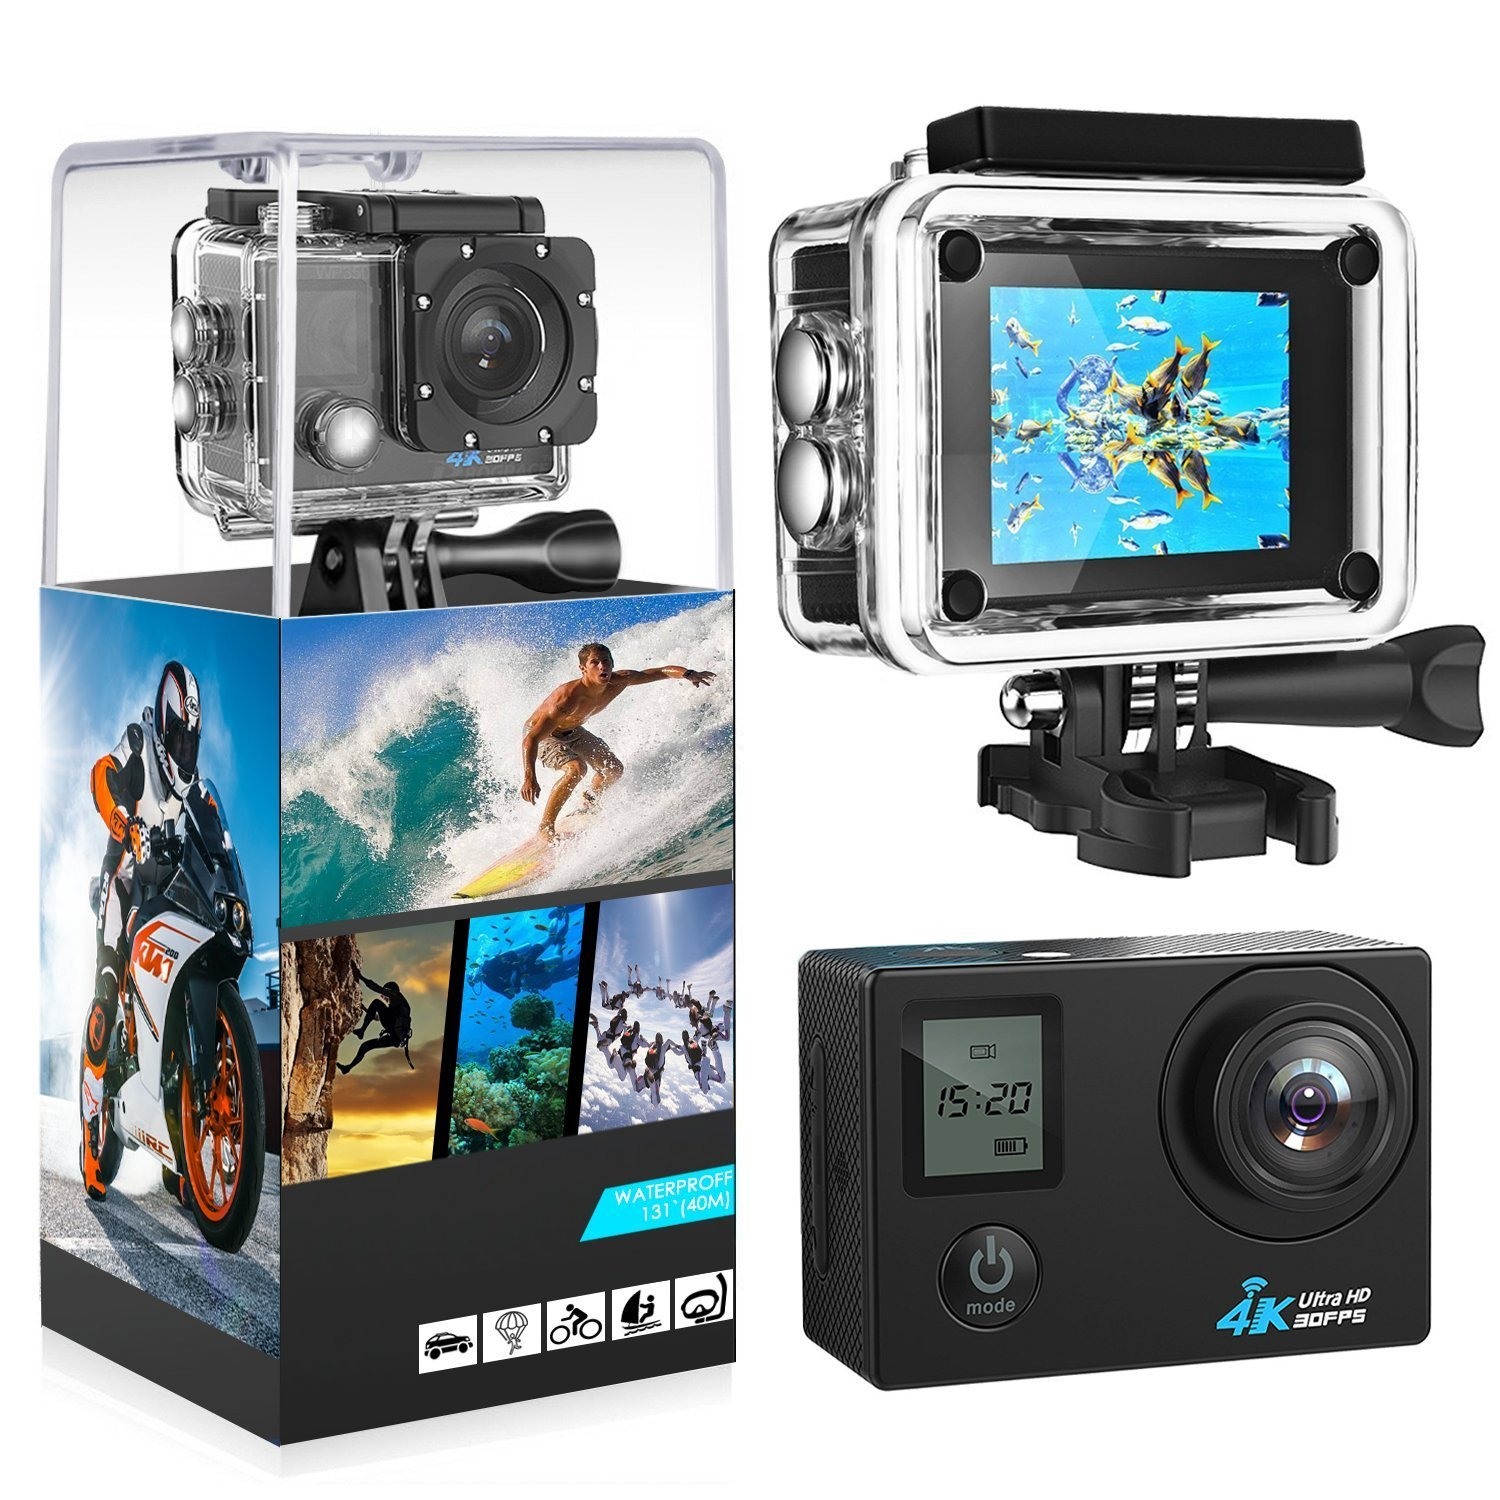 4K Action Camera, 2.0 LCD Display With Front Screen 4K WiFi Ultra HD Waterproof Sport Camera with 160 Wide-Angle Lens, Including Full Accessories Kits and Waterproof Case T-mars